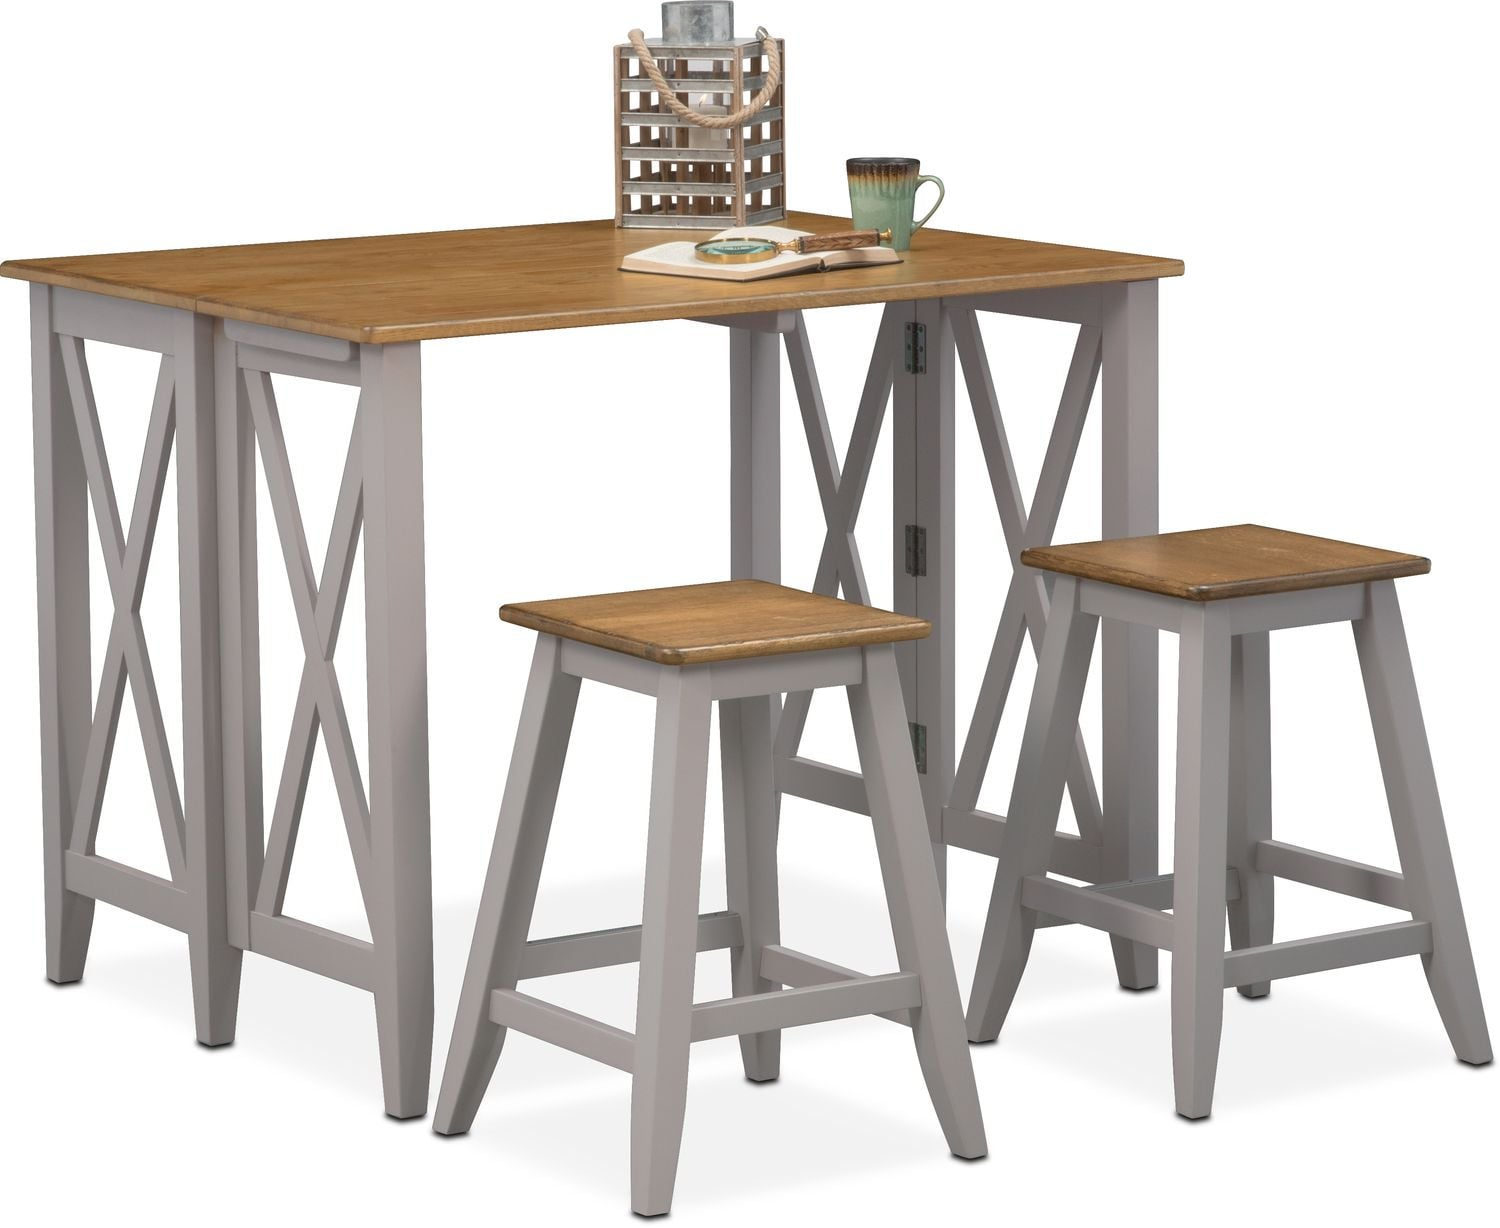 Nantucket breakfast bar and 2 counter height stools oak and gray american signature furniture - Breakfast table and stools ...